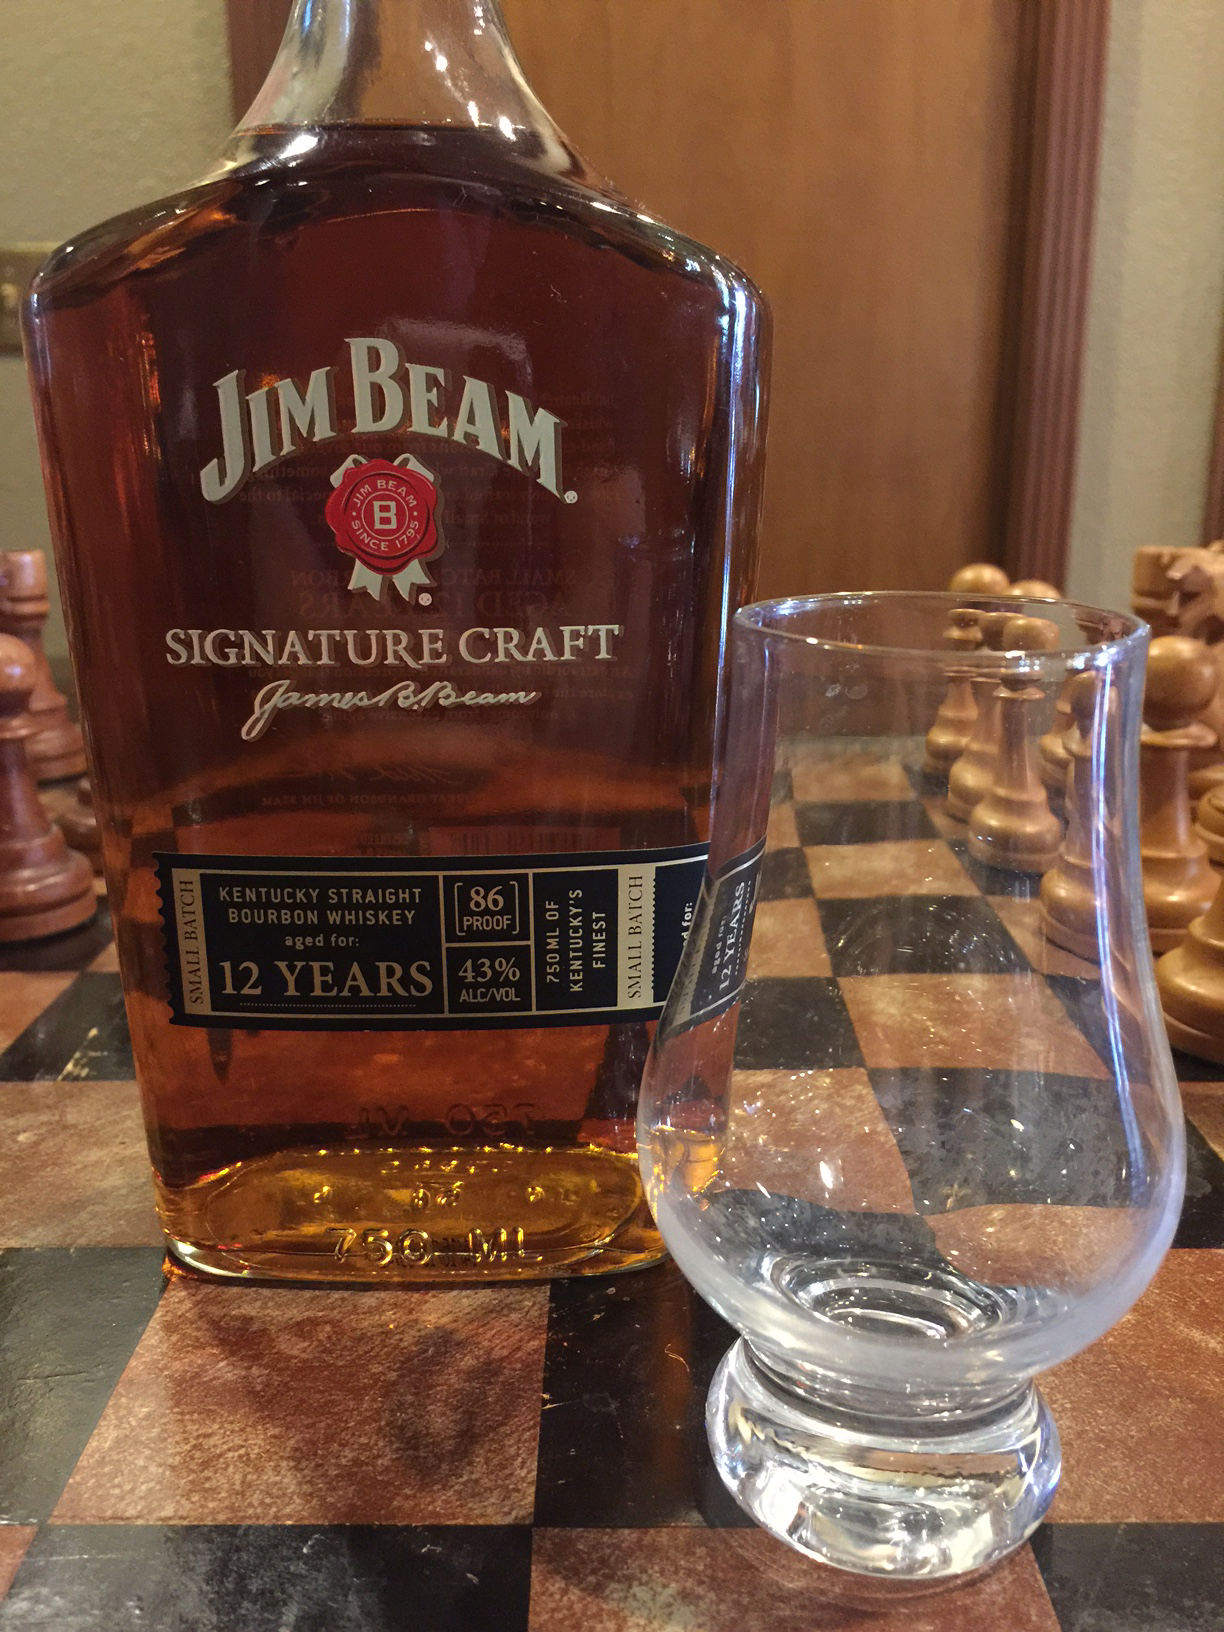 Jim Beam Signature Craft 12 Year Old Bourbon Review The